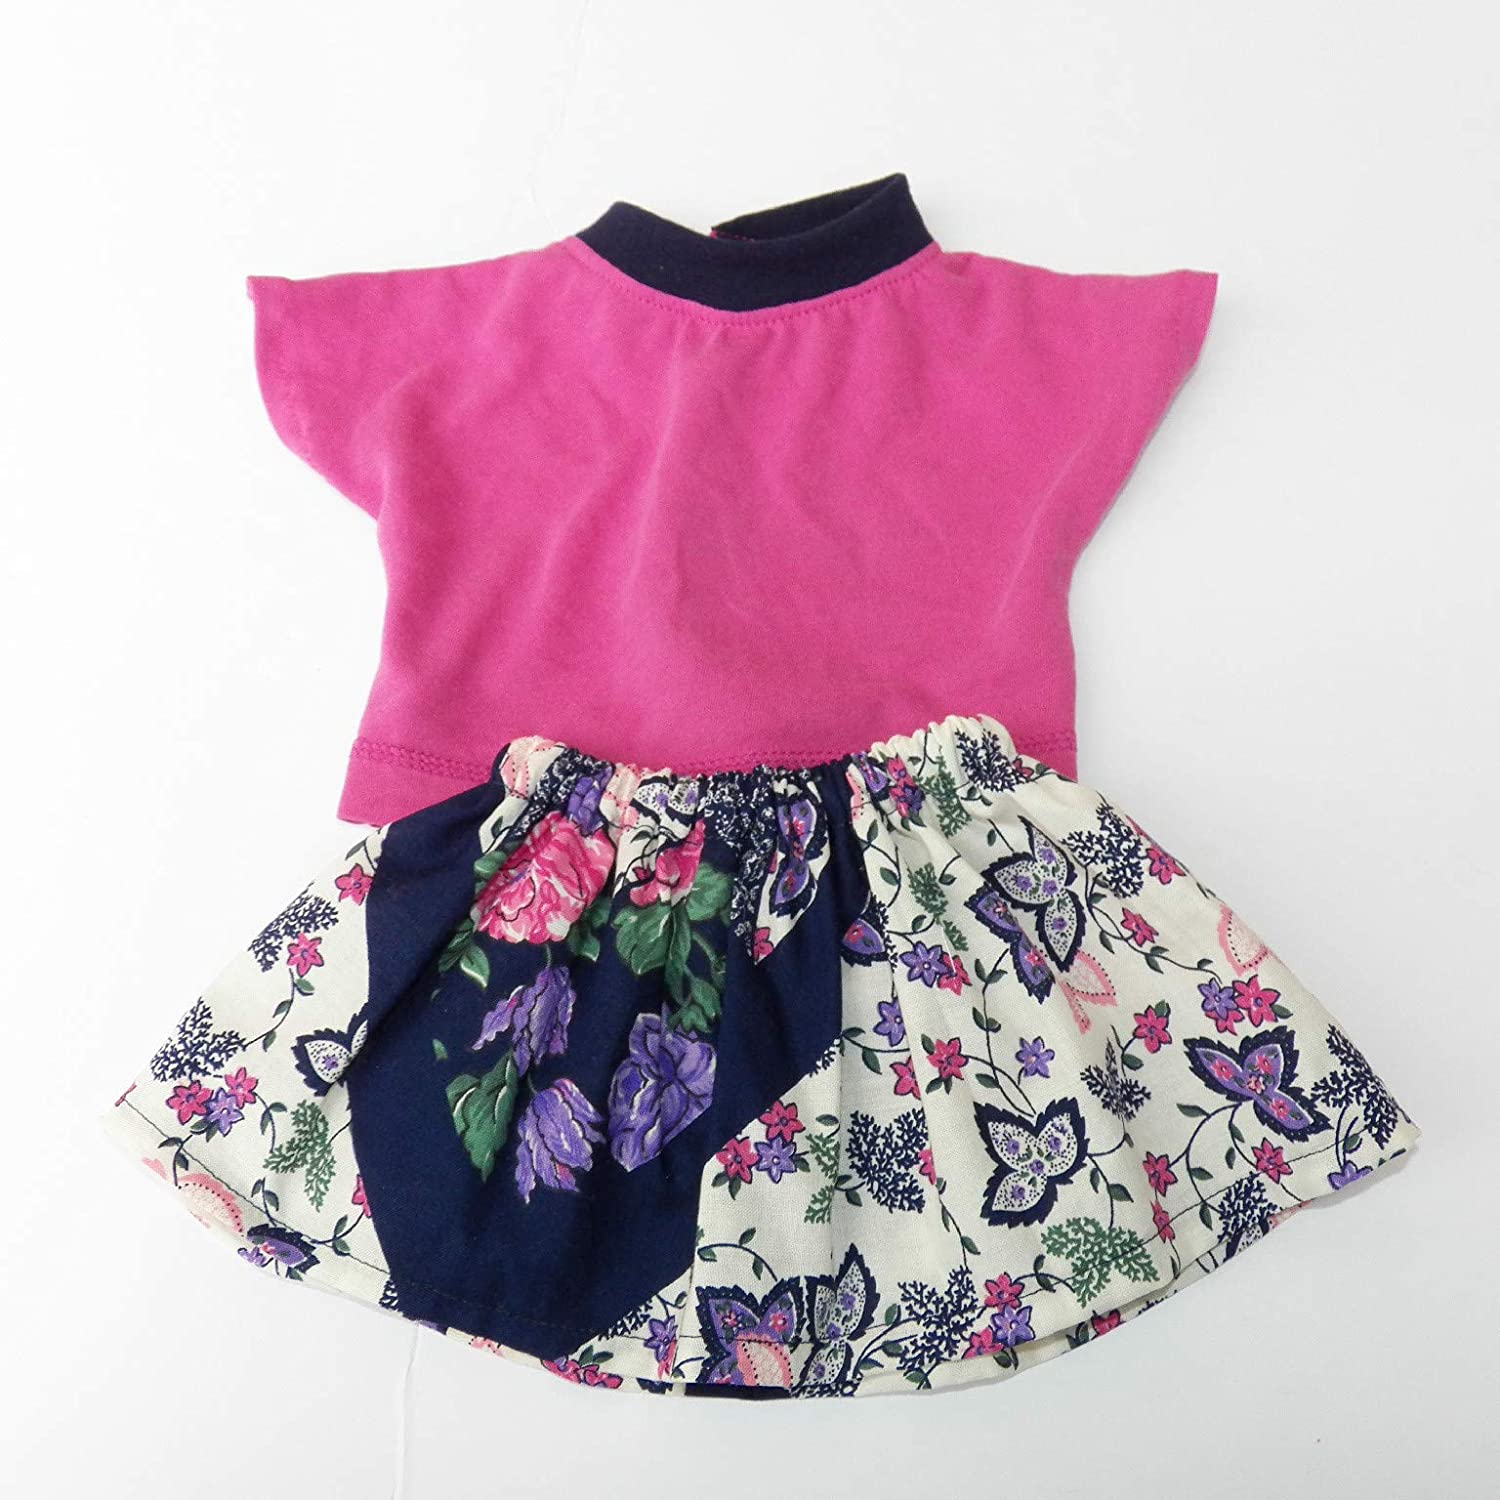 Cabbage Patch Doll Clothes Fits 16 Inch Girl Pink Blue T shirt and Butterfly Skirt No Doll